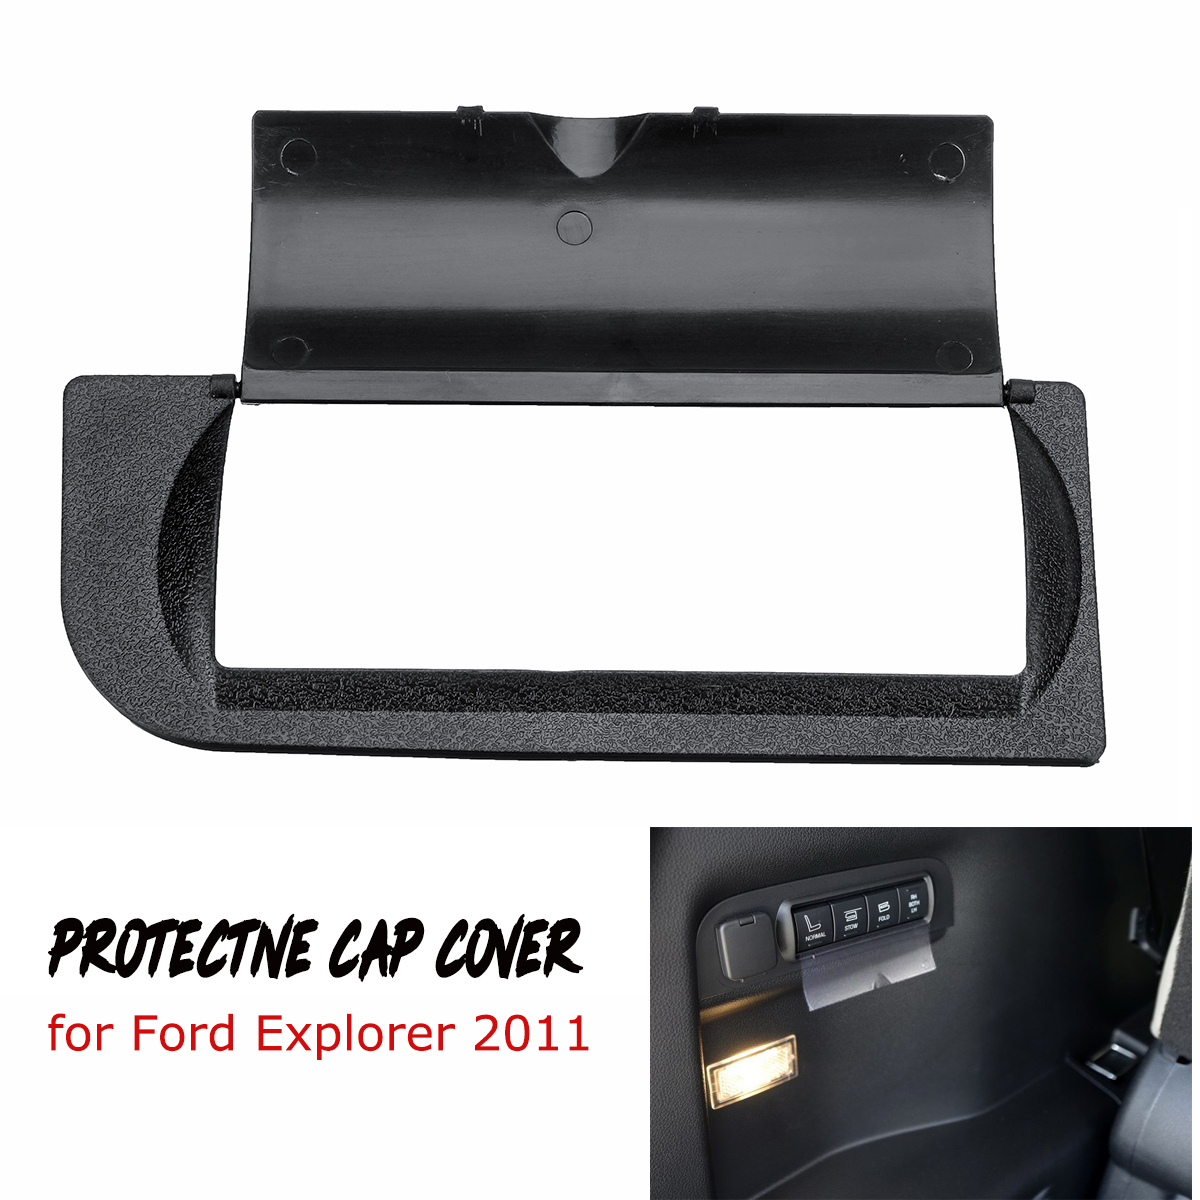 ABS Protective Cap Cover for Buttons In Trunk for Ford Explorer 2011 2012 2013 2014 2015 2016 2017ABS Protective Cap Cover for Buttons In Trunk for Ford Explorer 2011 2012 2013 2014 2015 2016 2017